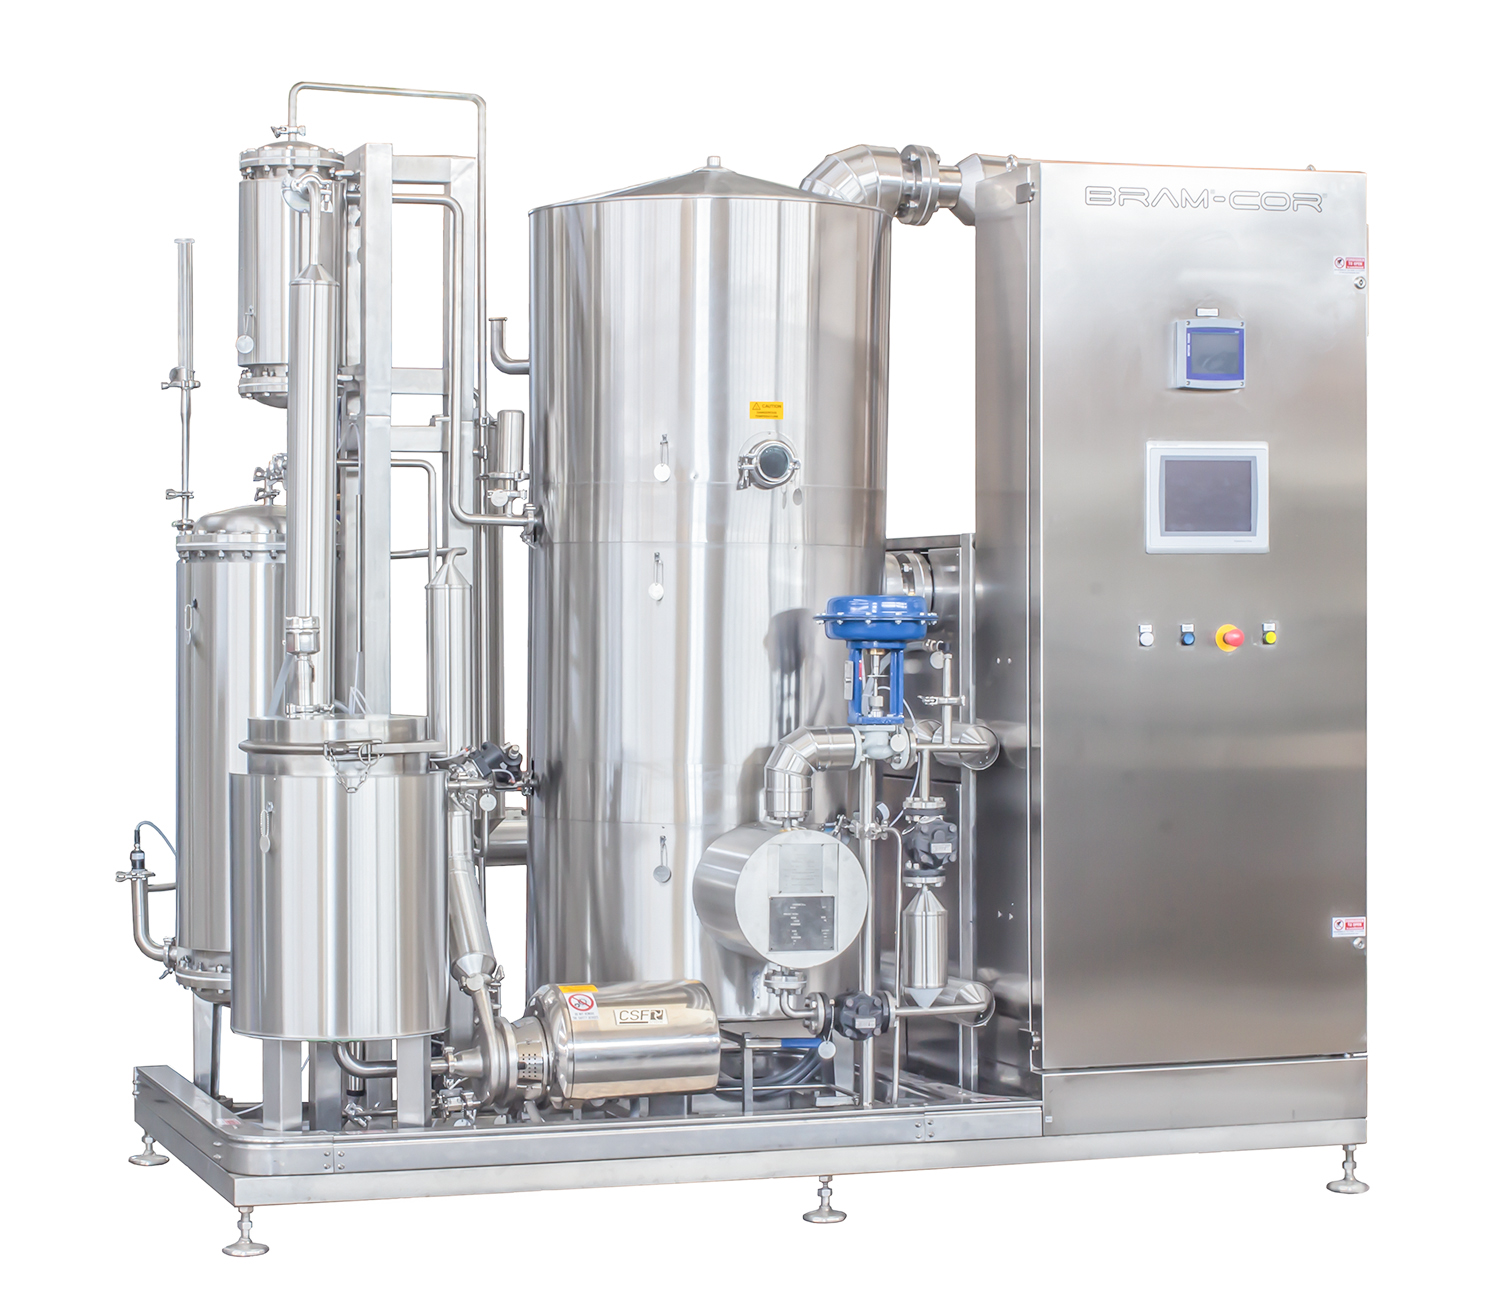 Bram-Cor Pharmaceutical Equipment - Vapor Compression Distiller STMC ST 350